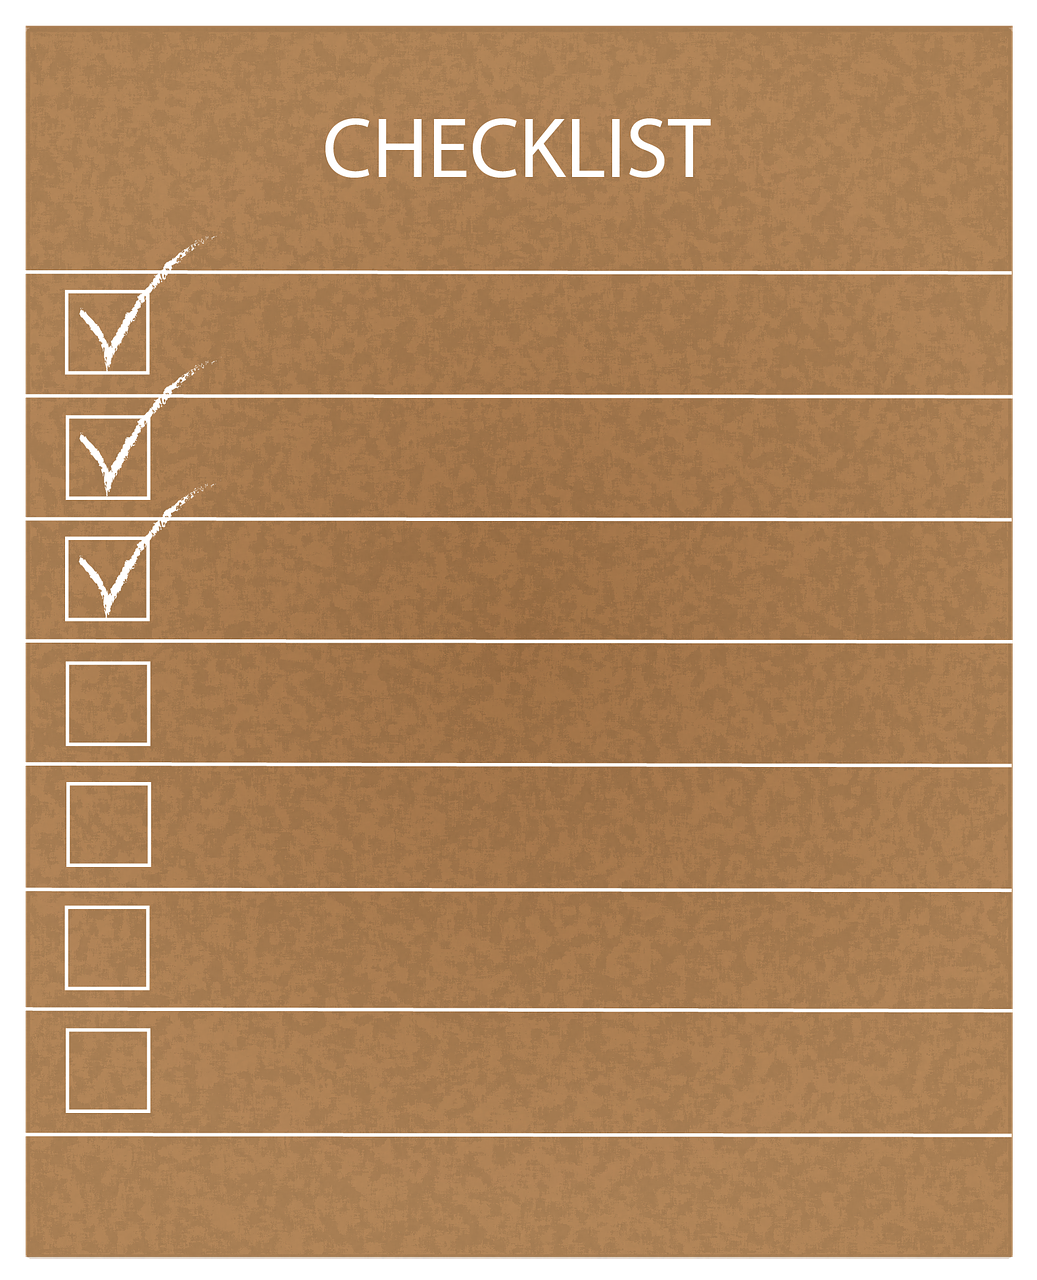 What Is The Value Of Checklists In Medical Practice?